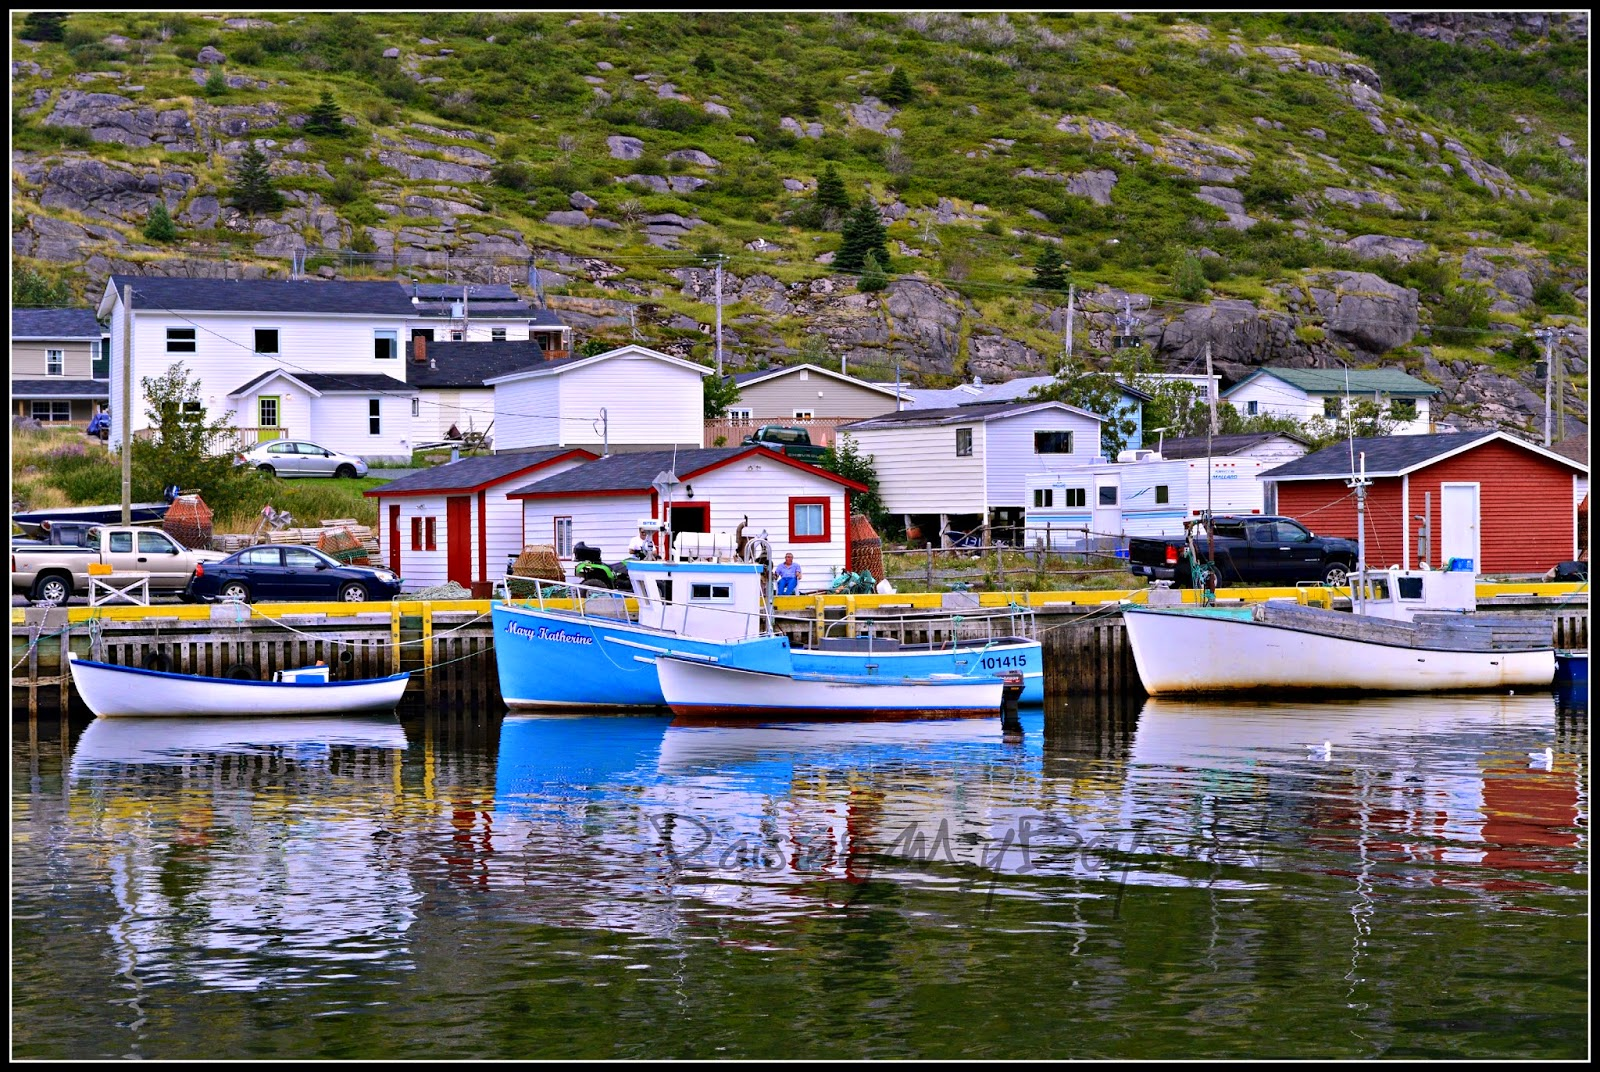 boats in Petty Harbour, NL